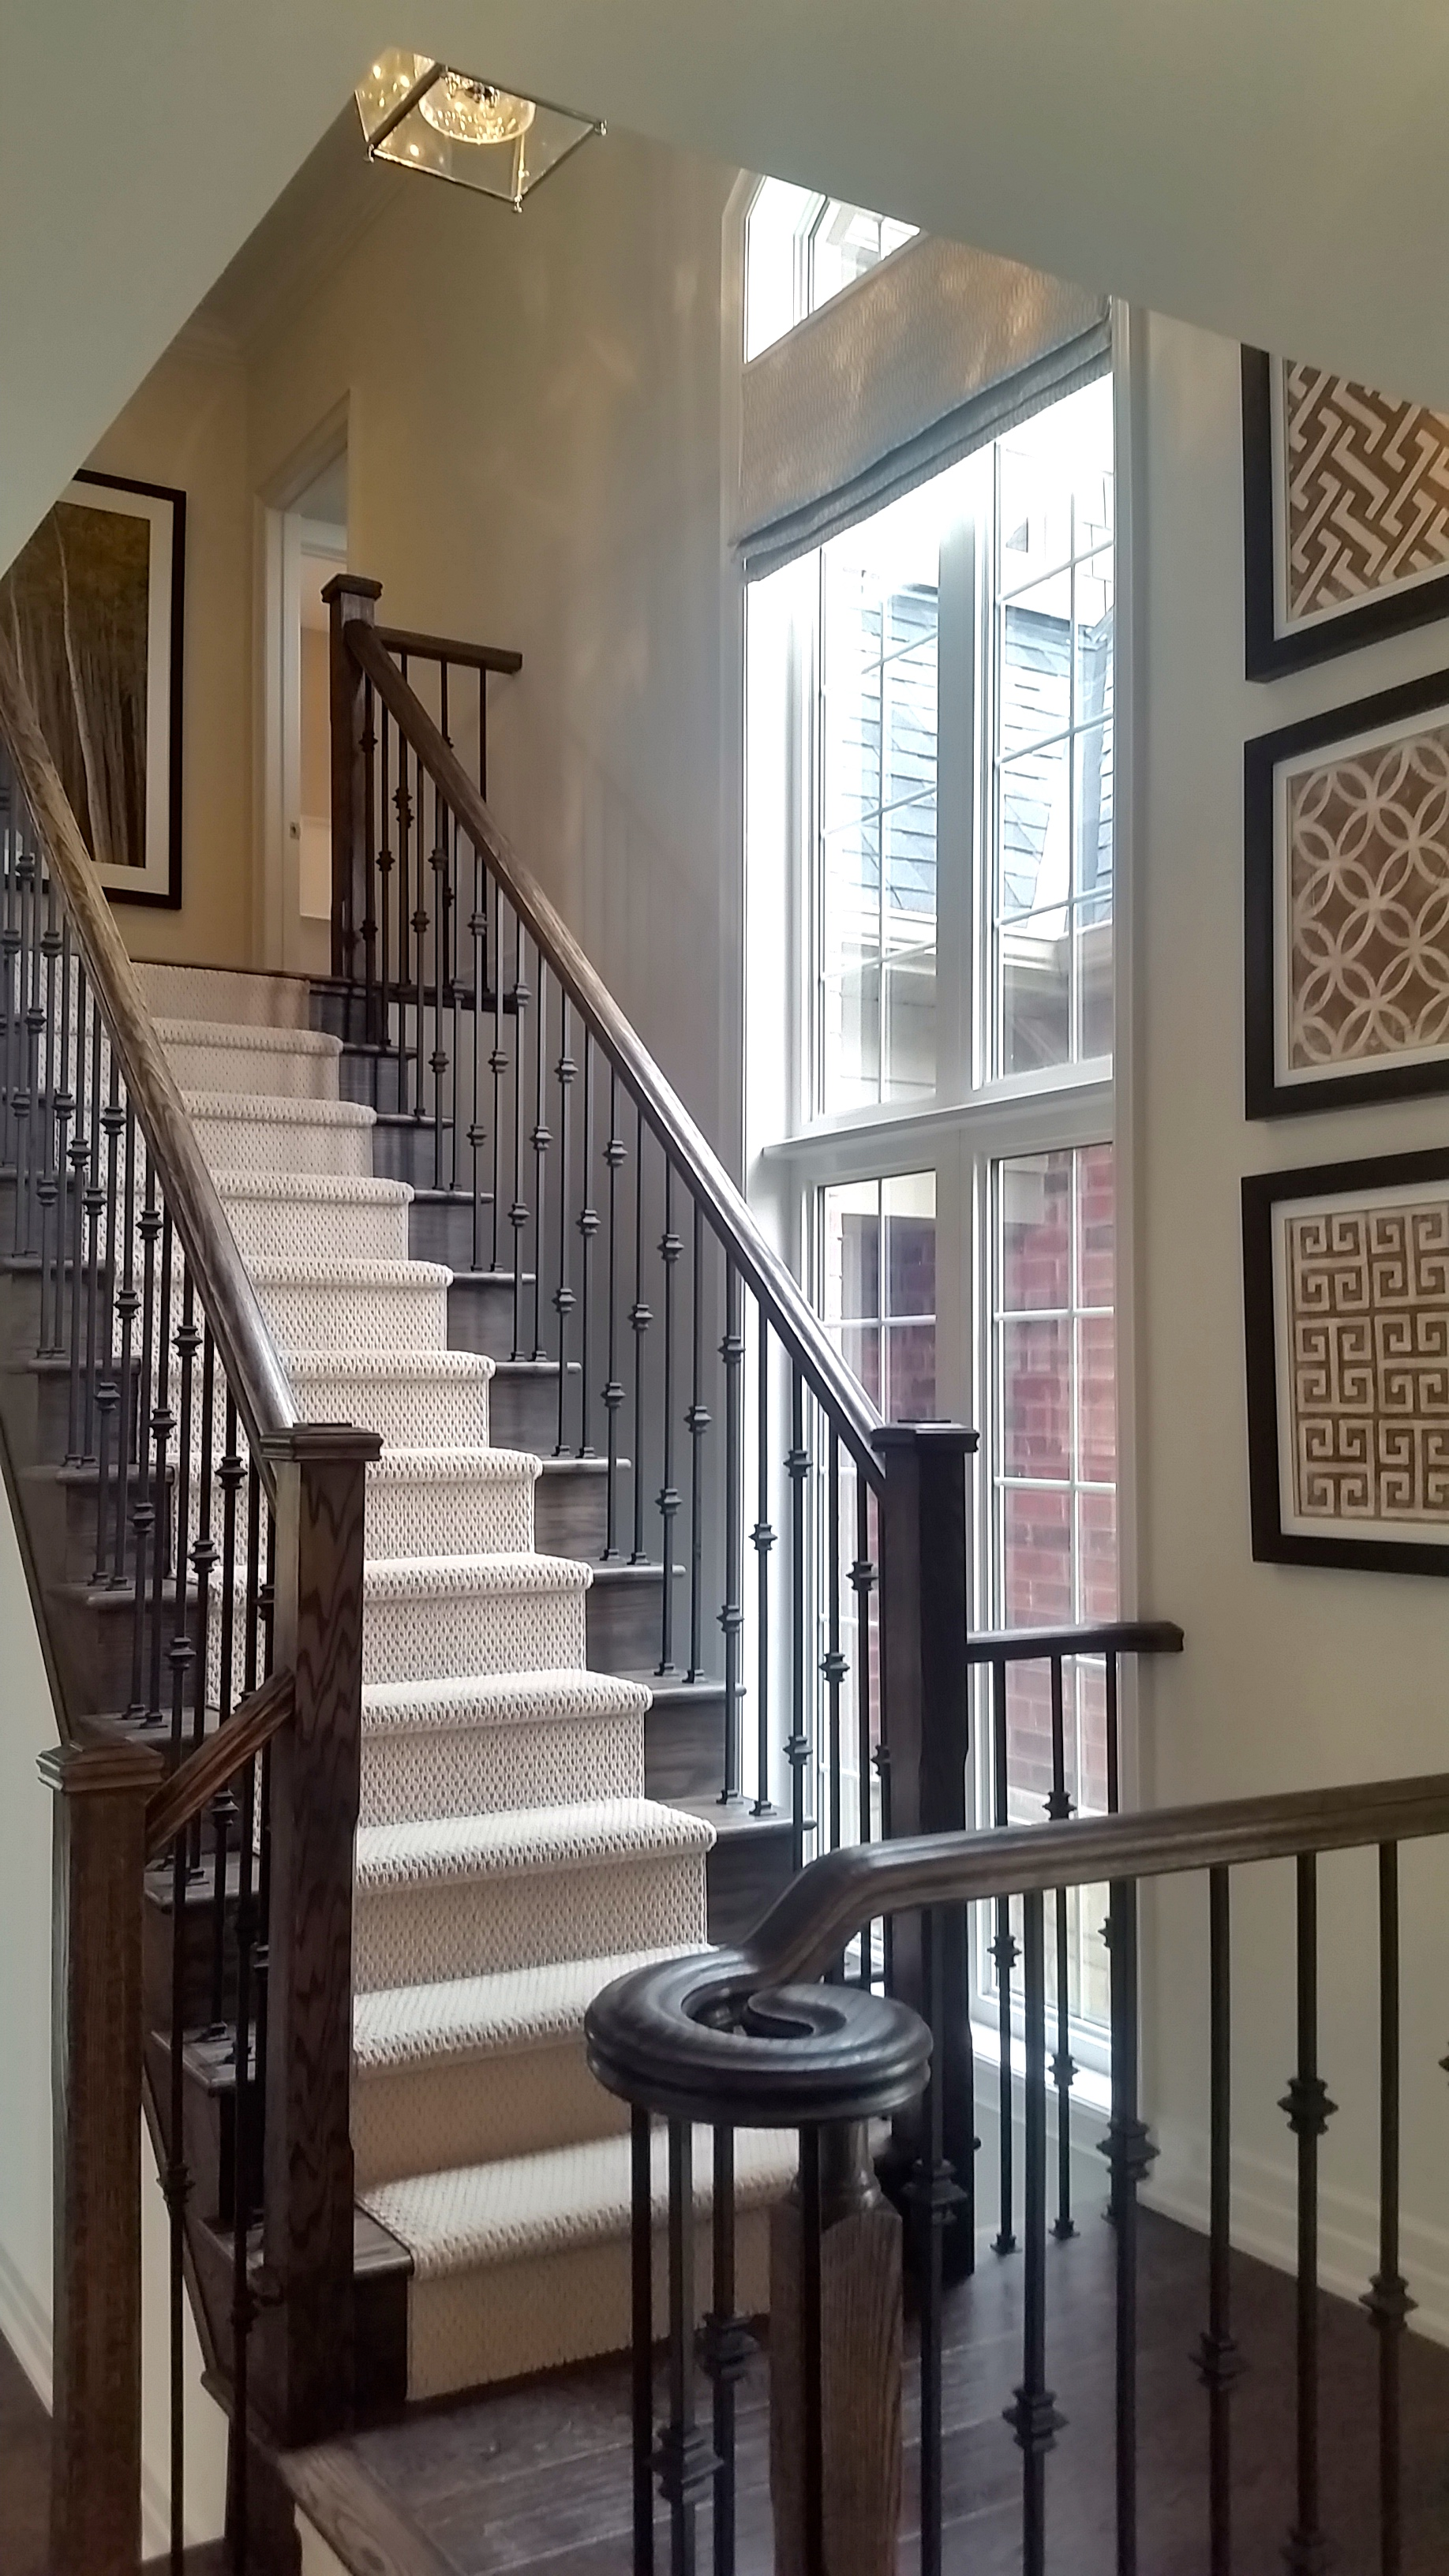 I liked the placement of this staircase.